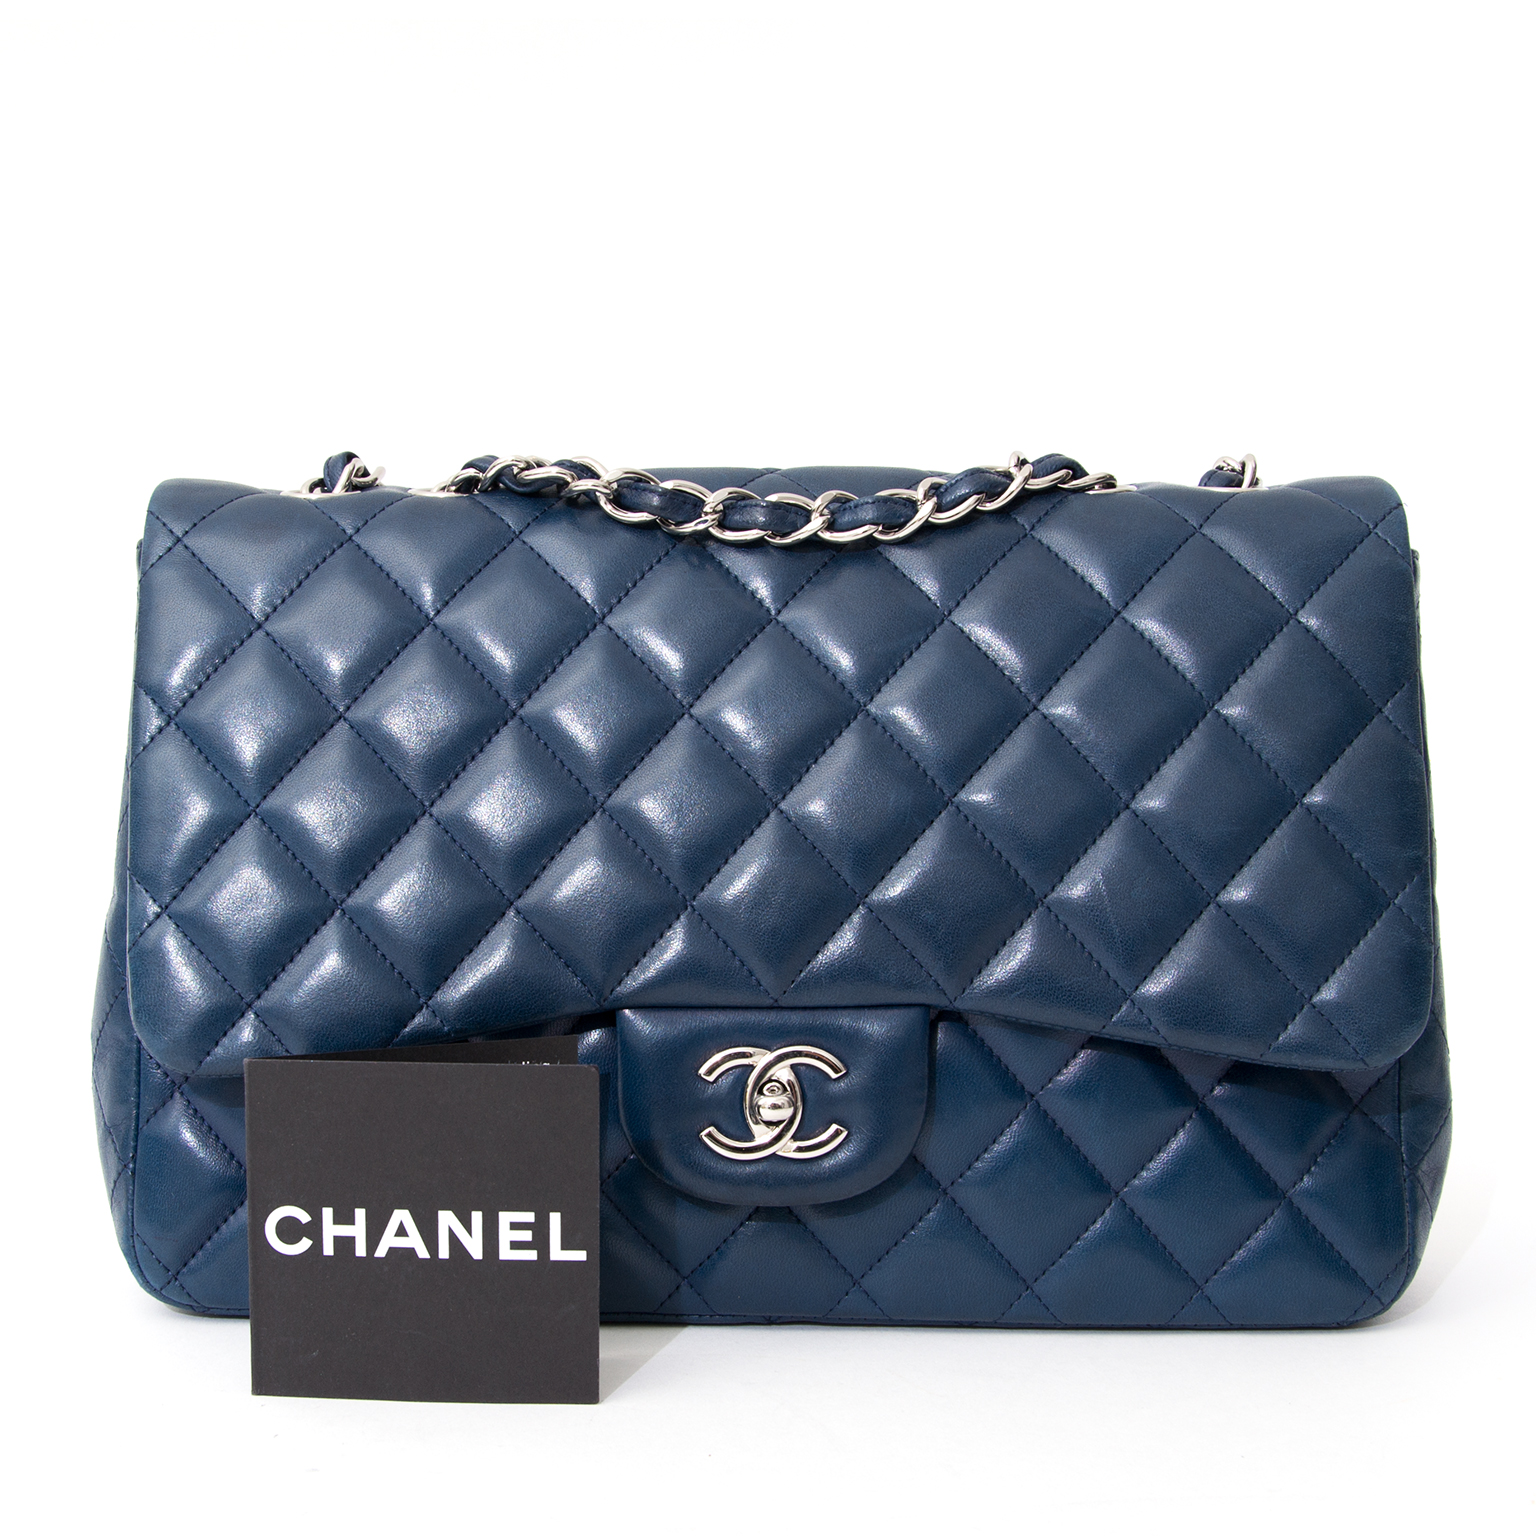 89f688397963 ... rea real second hand 100% authentic acheter safe et secure sac a main  Chanel Petrol